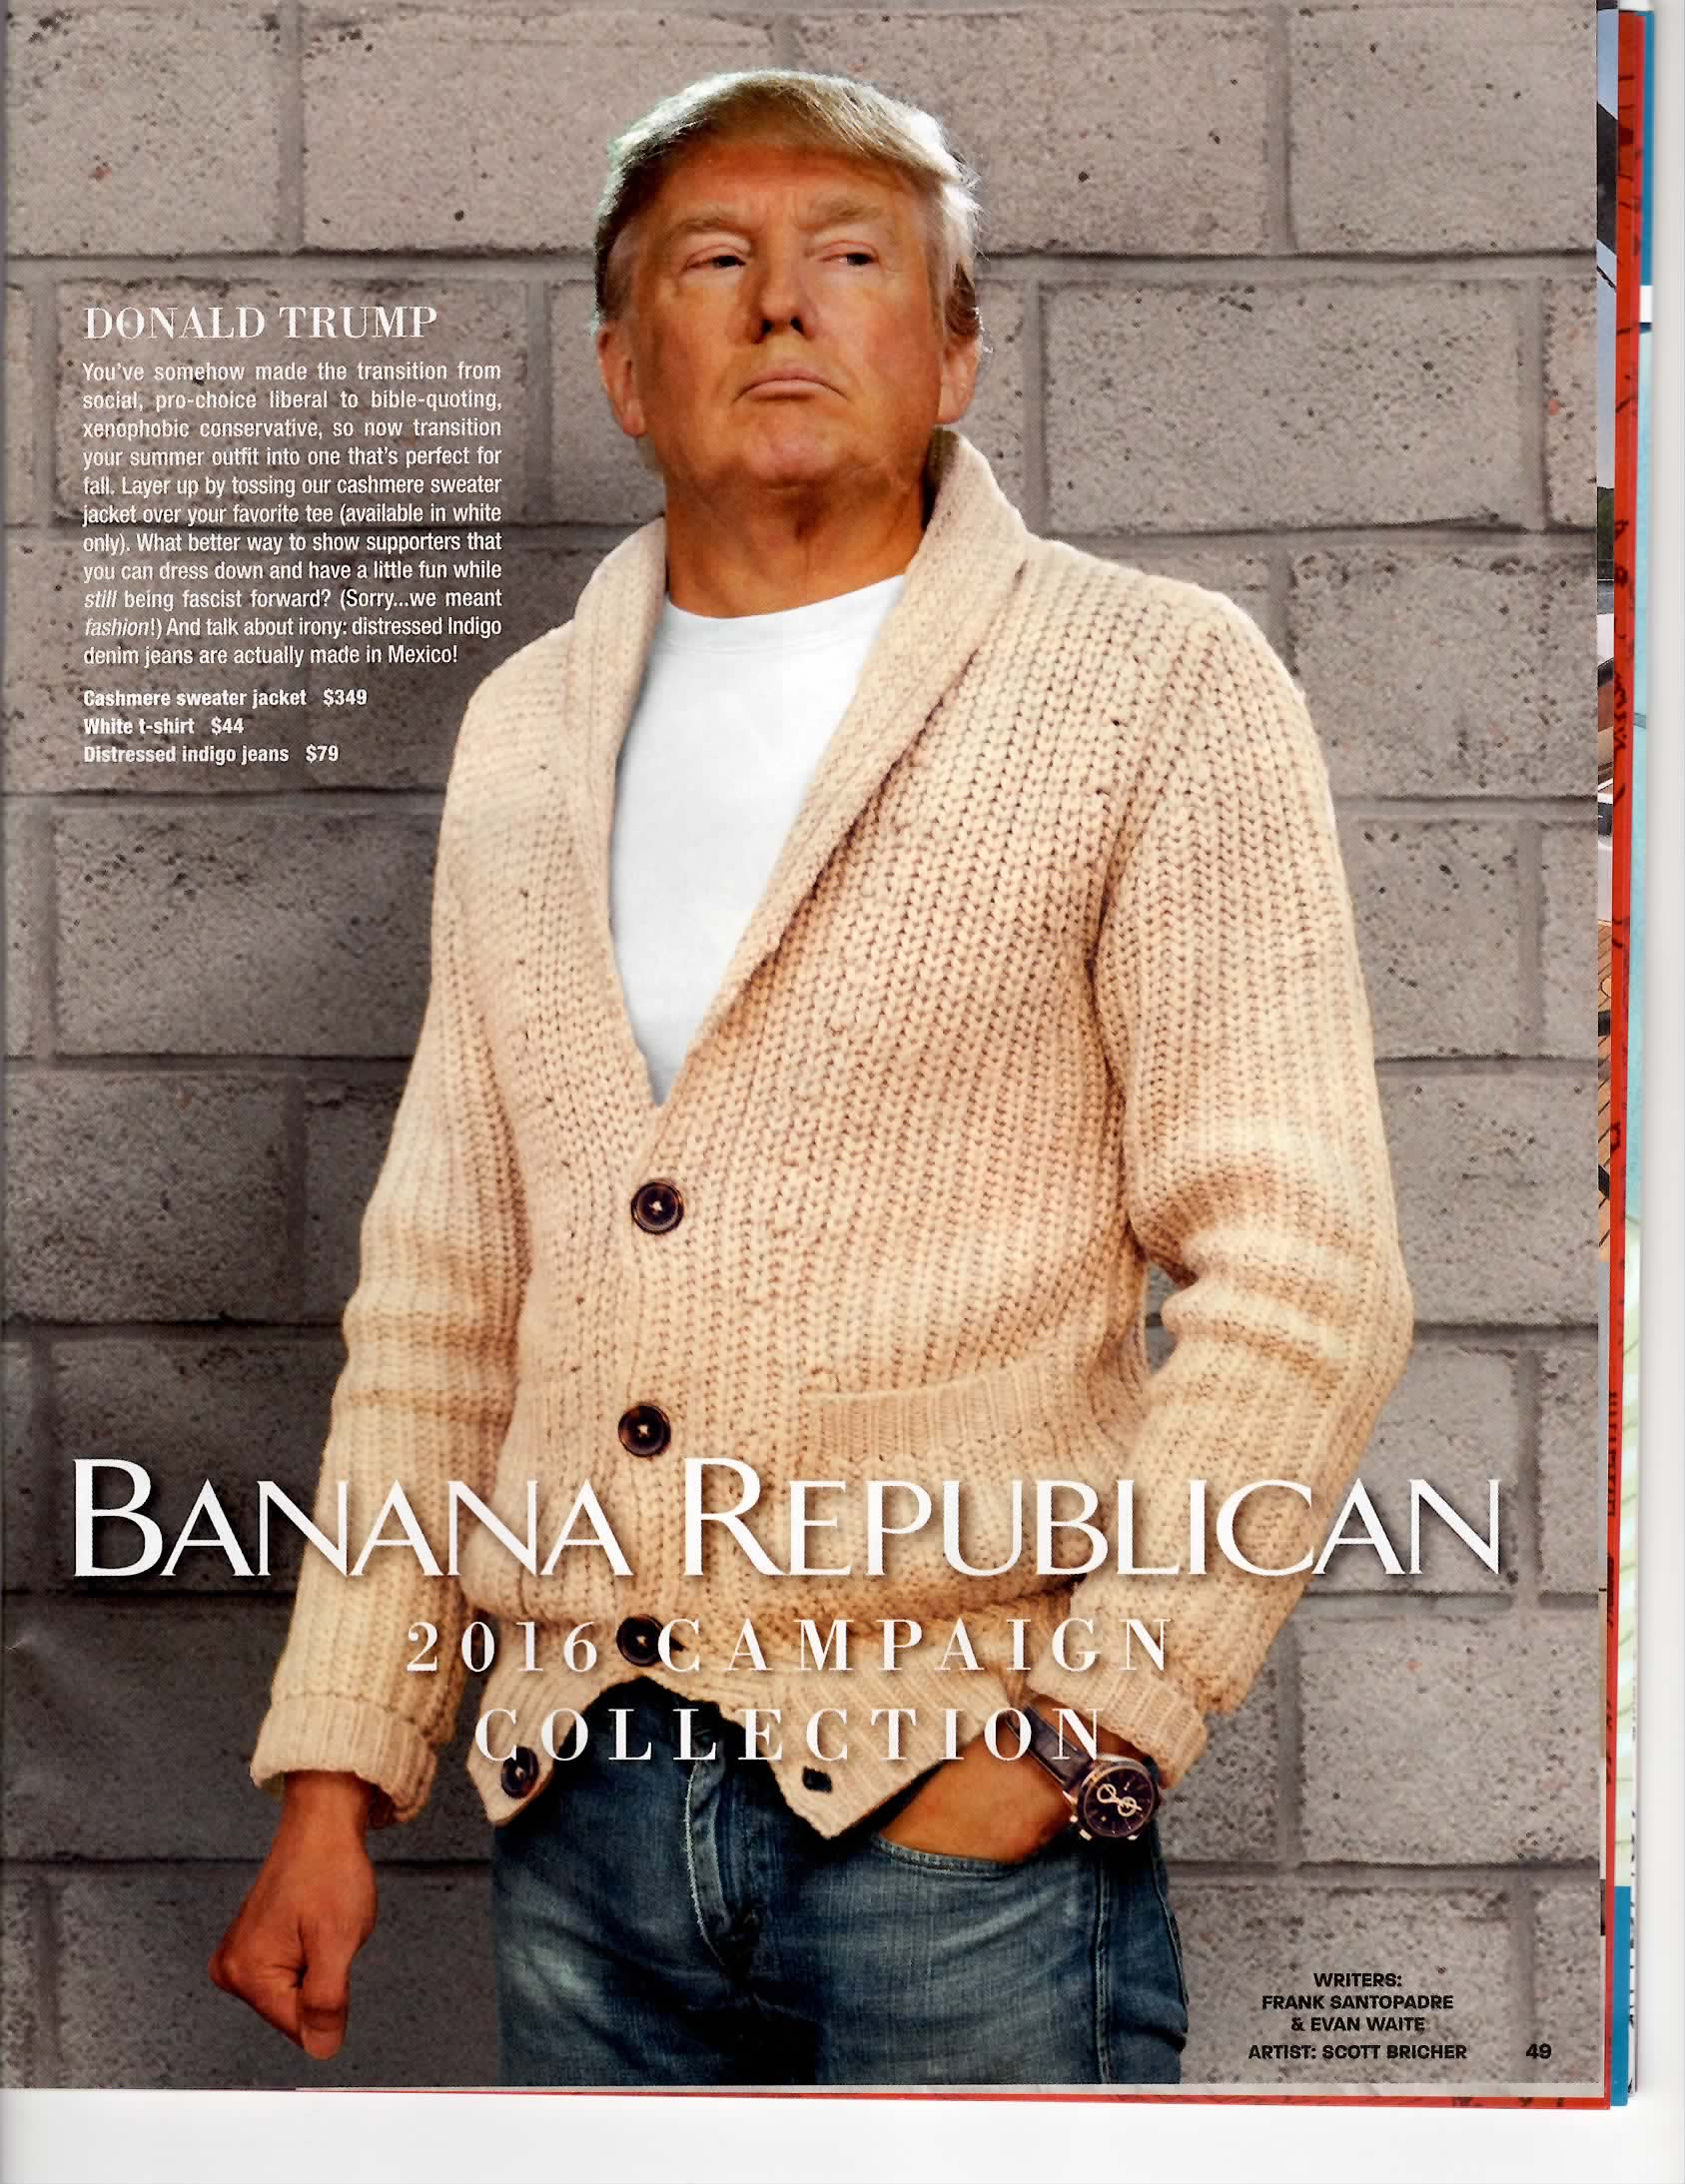 Banana Republican Campaign Edition